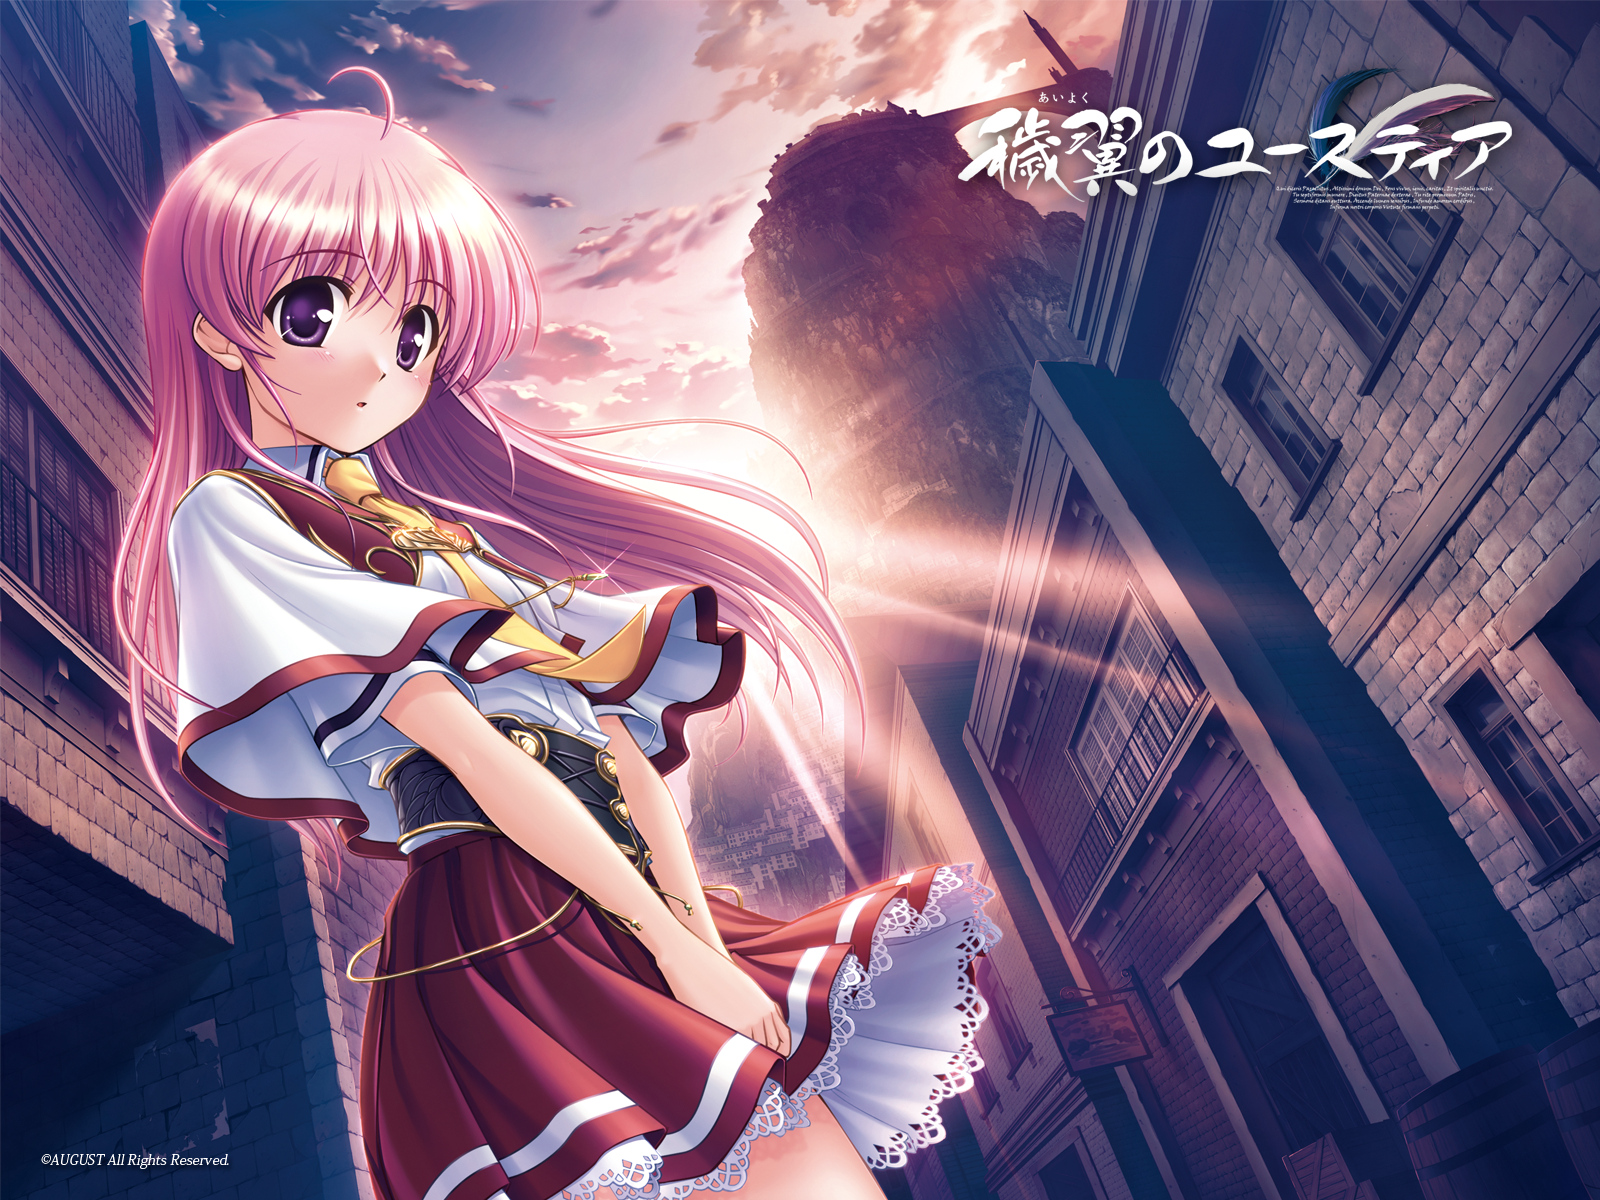 anime girl anime girl wallpapers 2 anime girl wallpaper geng anime 1600x1200